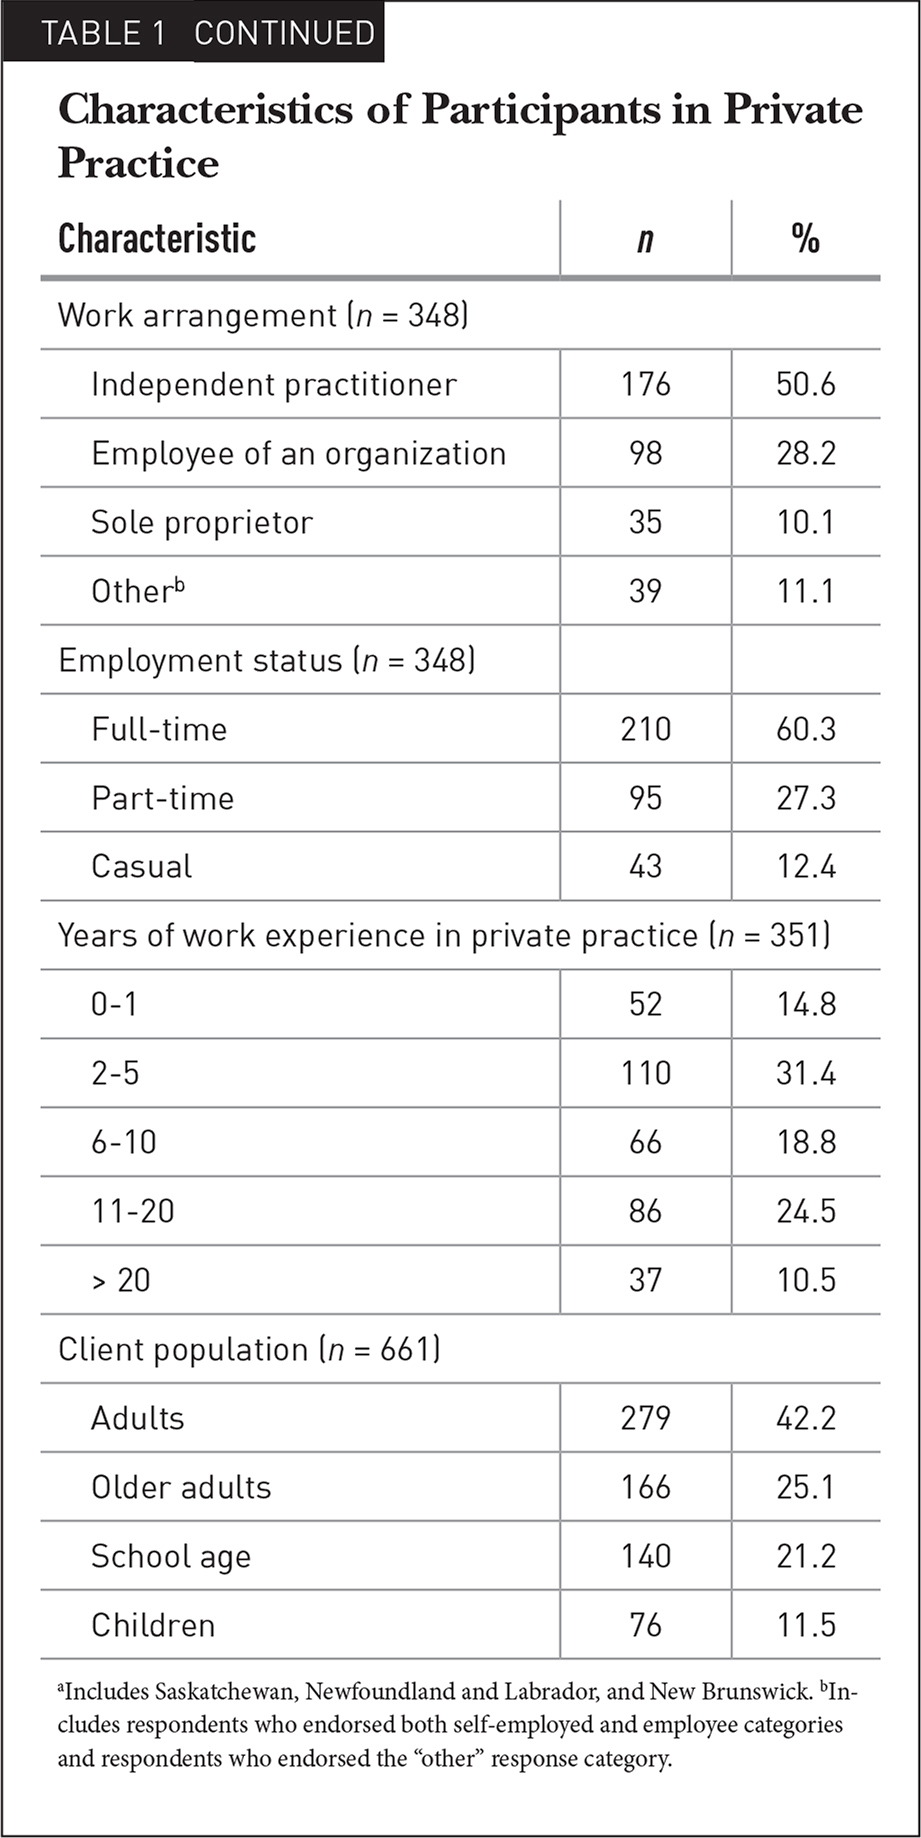 Characteristics of Participants in Private Practice